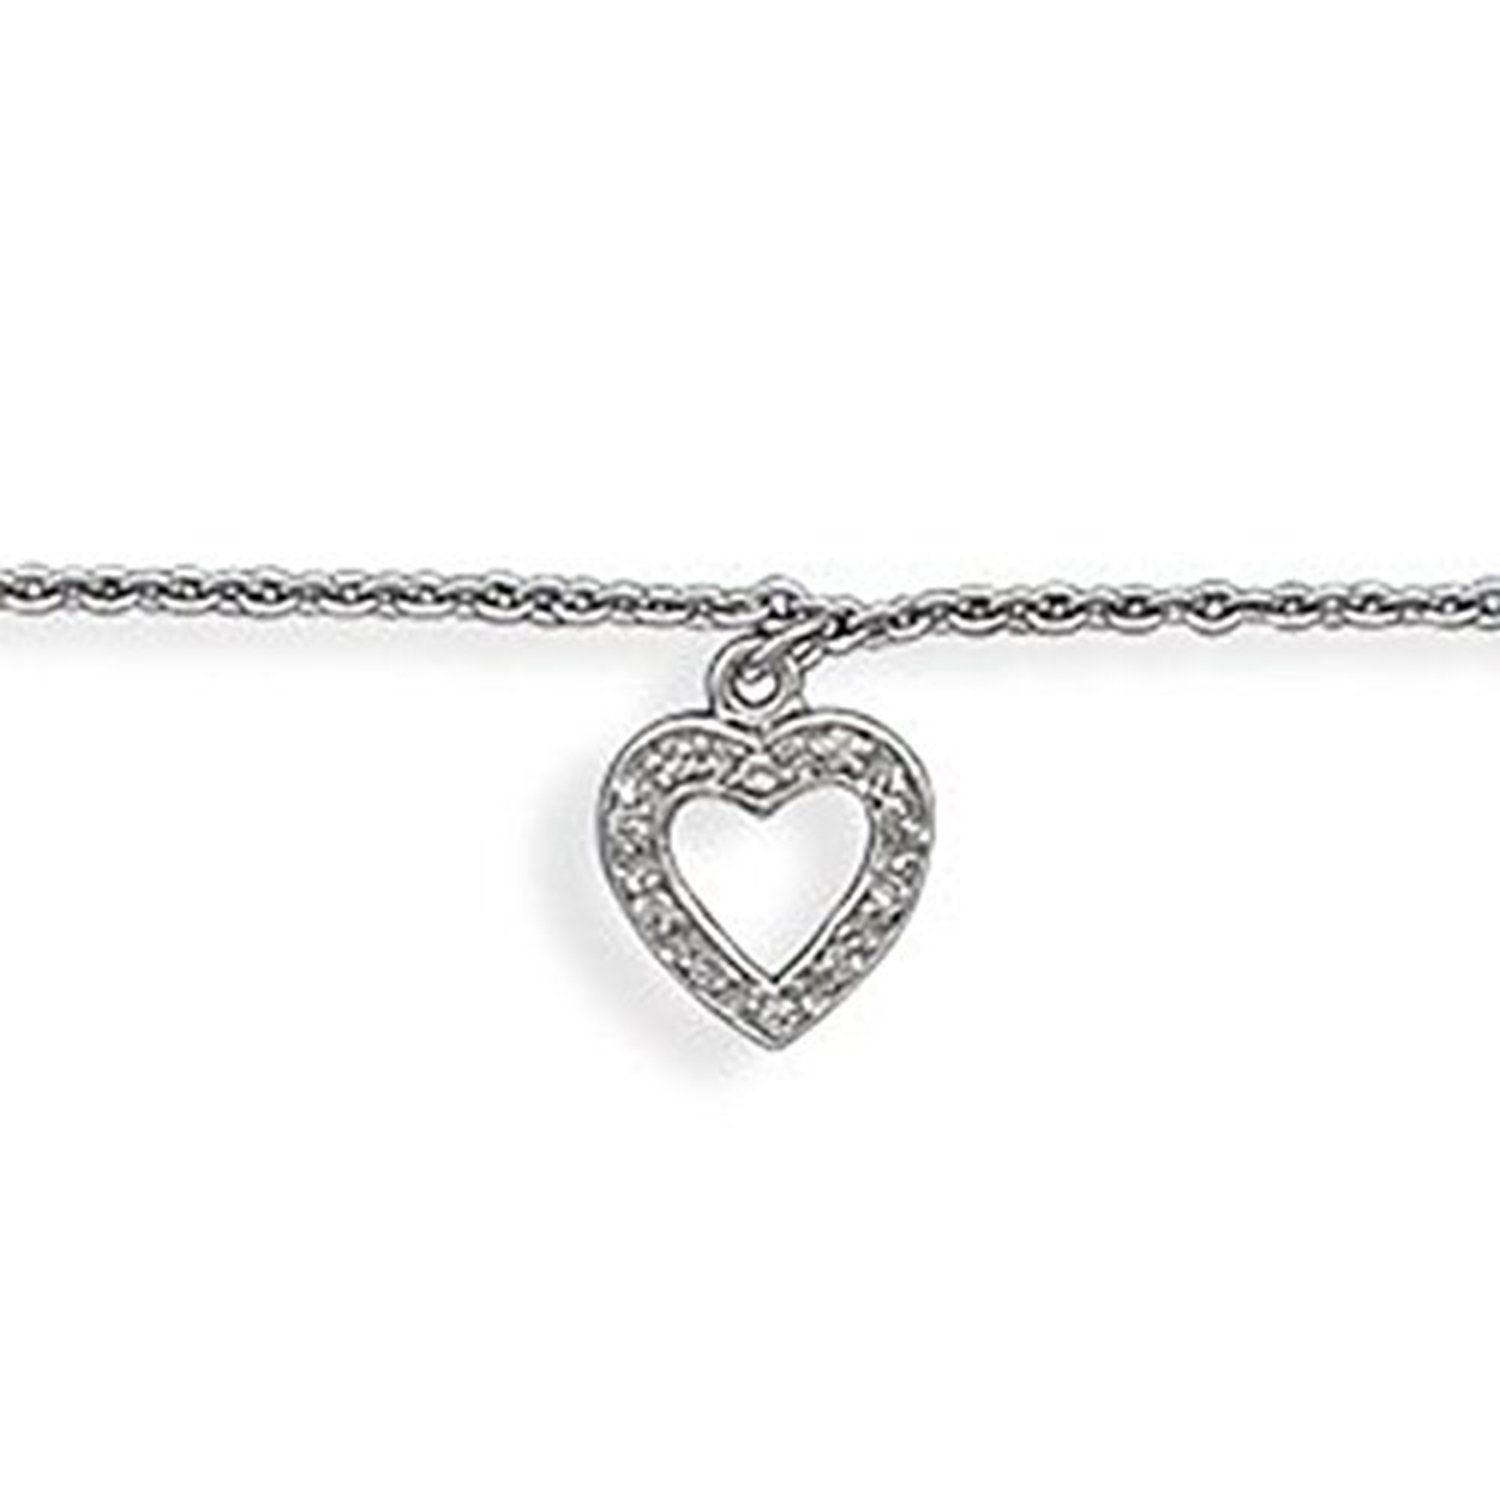 and hearts more url long ext image with silver be anklet polished at sterling pin the found inches cubic extender info could inch zirconia